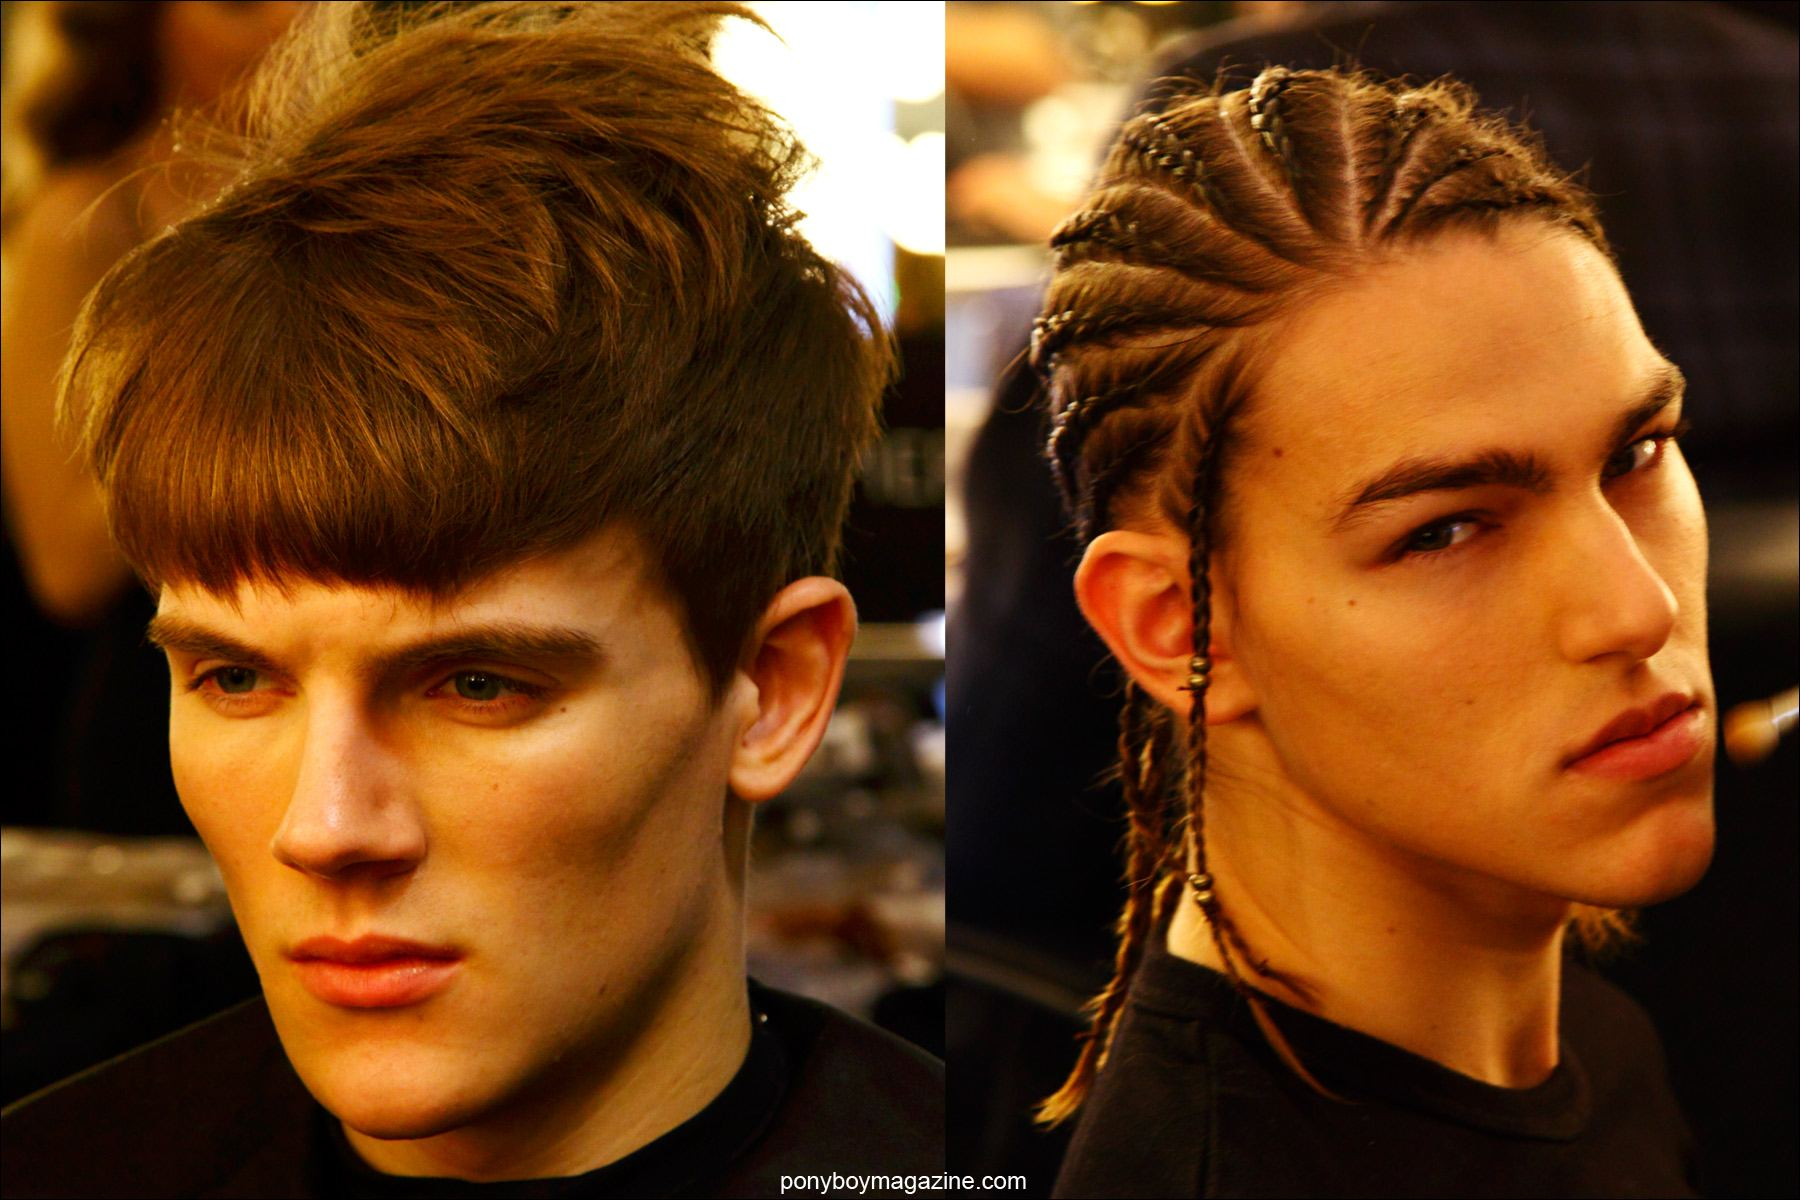 Male models backstage in hair, photographed at Pier 59 Studios for Martin Keehn F/W15 menswear collection. Photographs by Alexander Thompson for Ponyboy magazine.